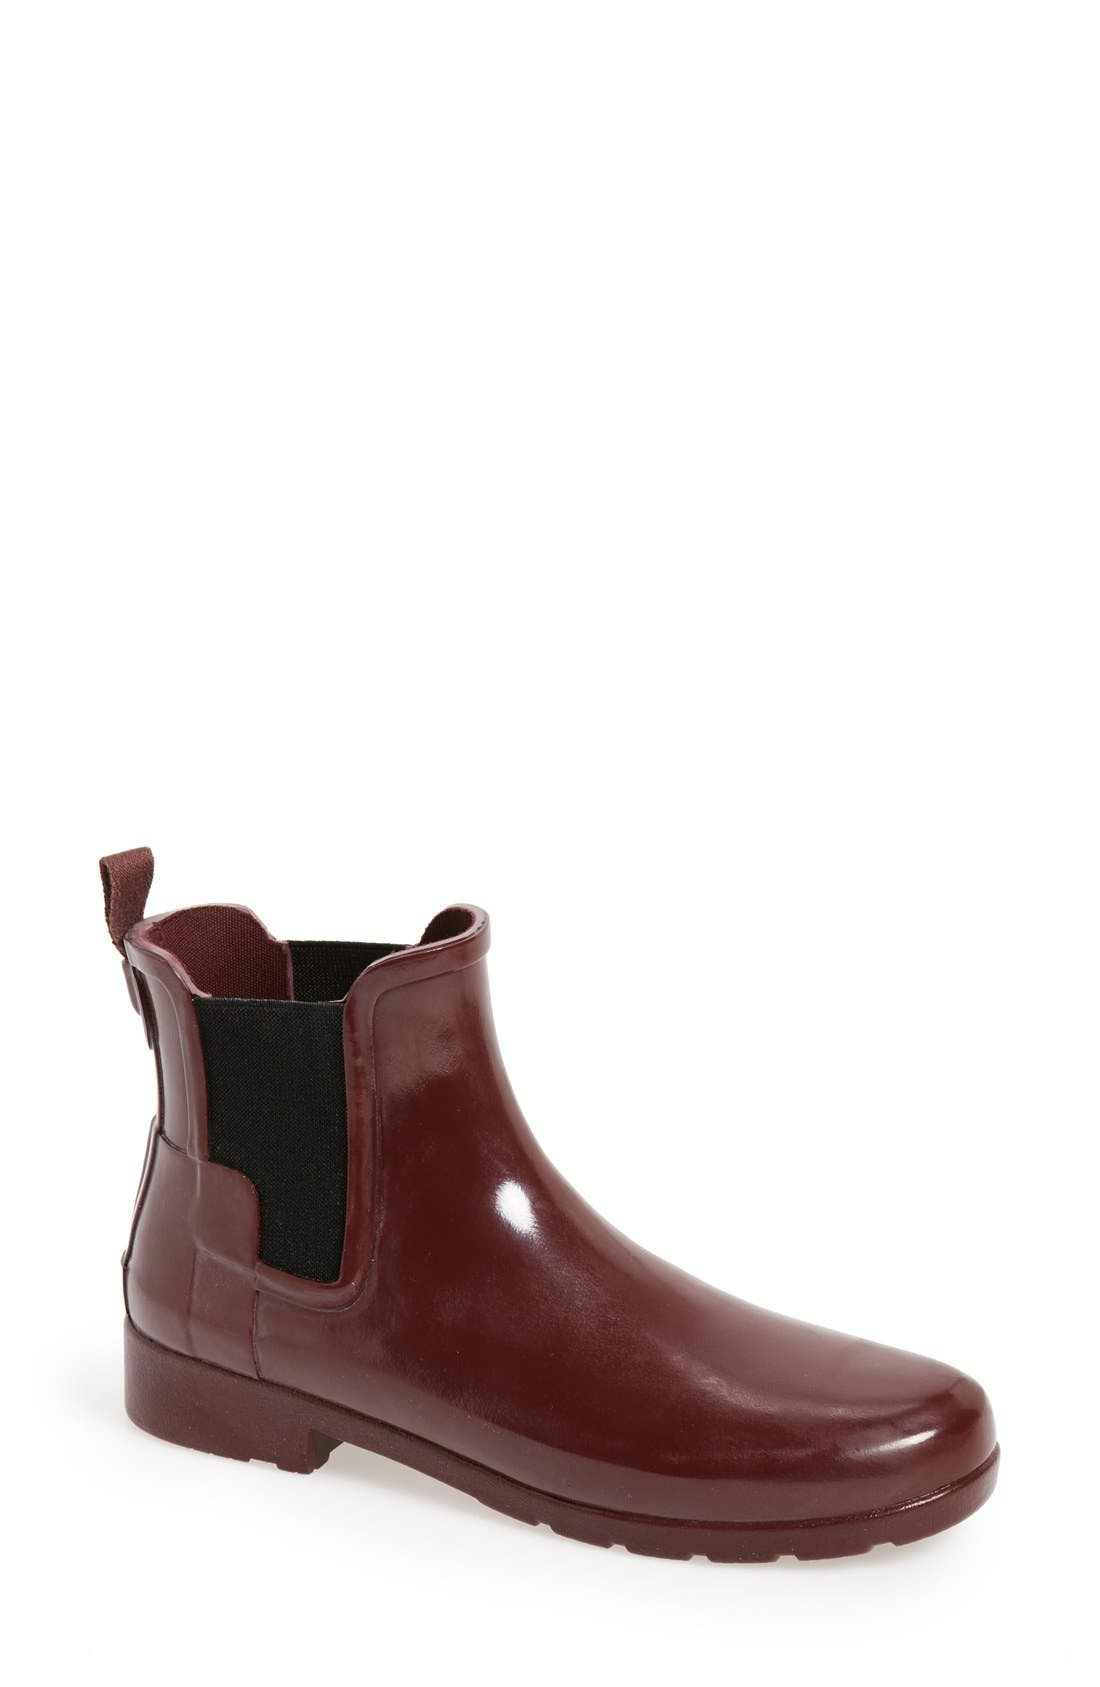 Alternate Image 1 Selected - Hunter 'Original Refined' Chelsea Rain Boot (Women)